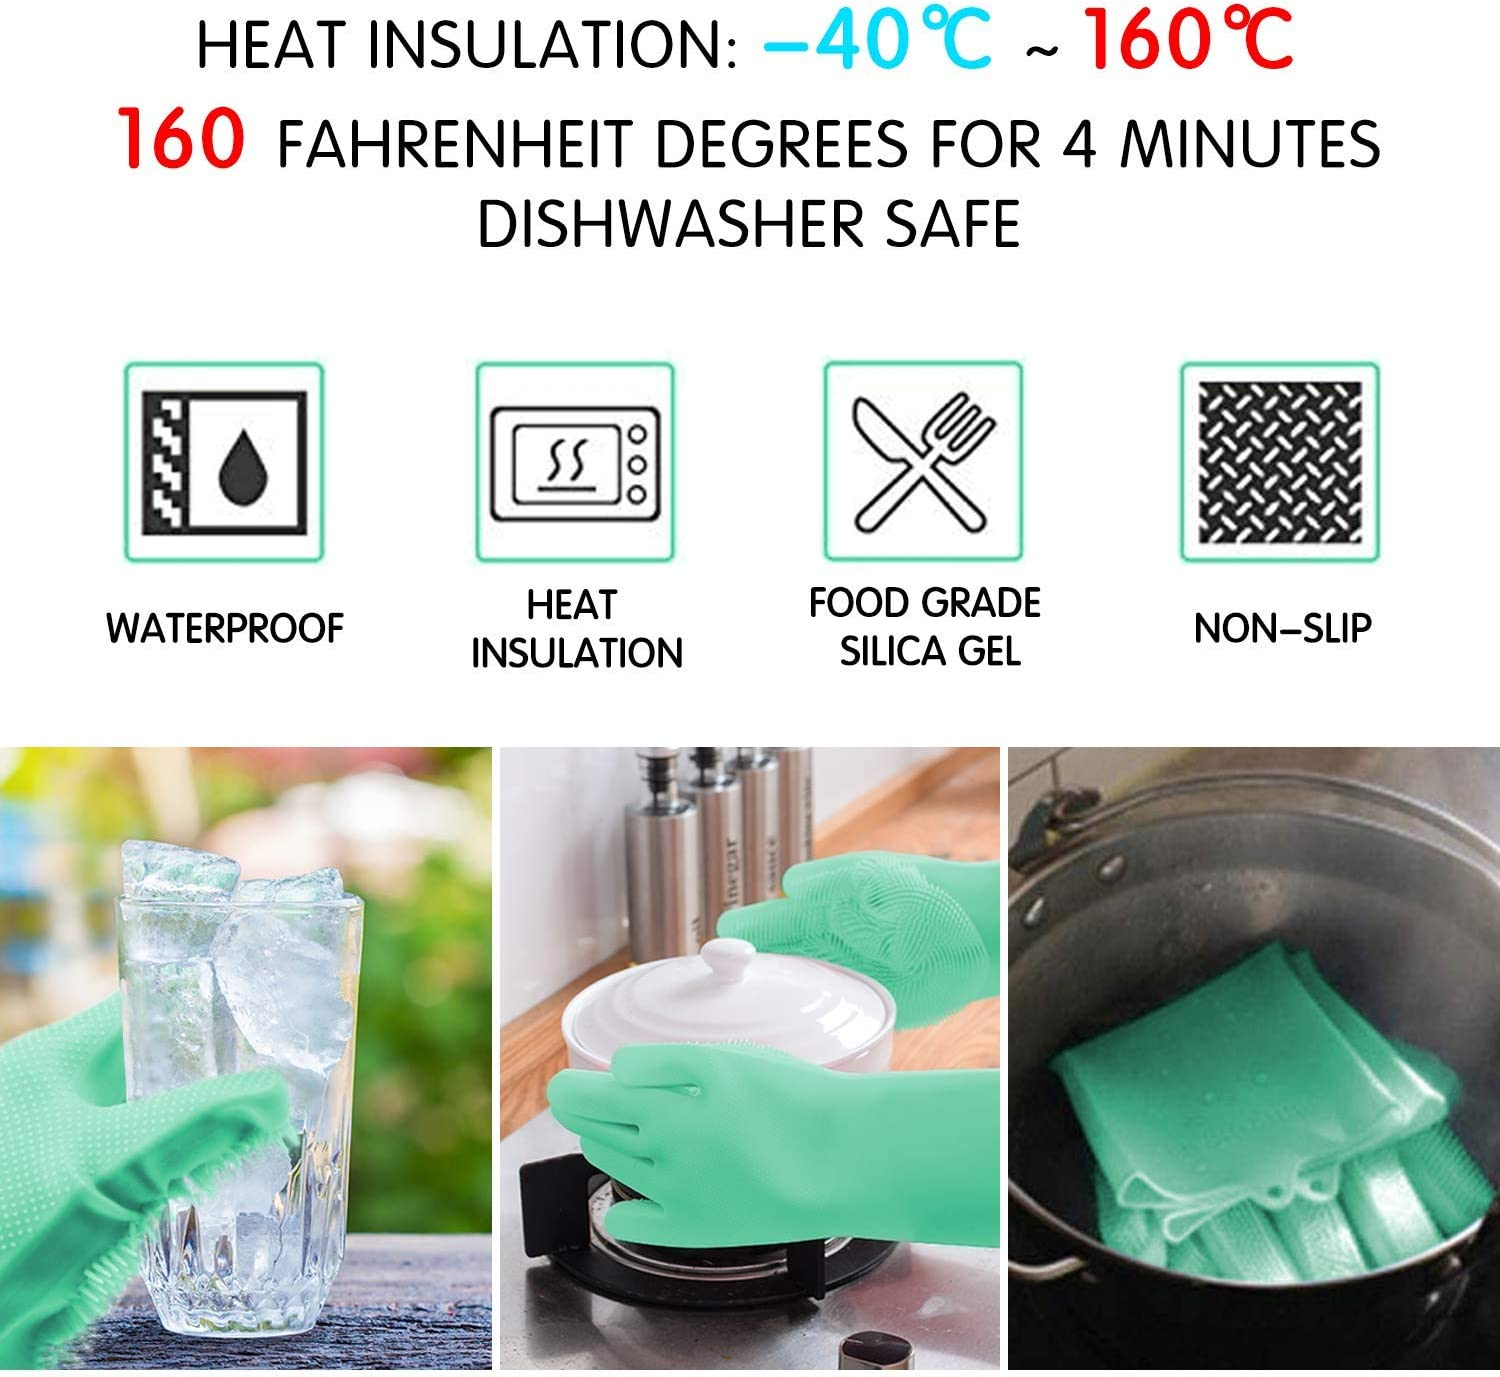 Kitchen Reusable Silicone Dish Wash Scrubbing Sponge Gloves with Bristles for Household Car,Bathroom Letlar Magic Saksak Silicone Cleaning Gloves Brush Scrubber Pet and More Washing Dish